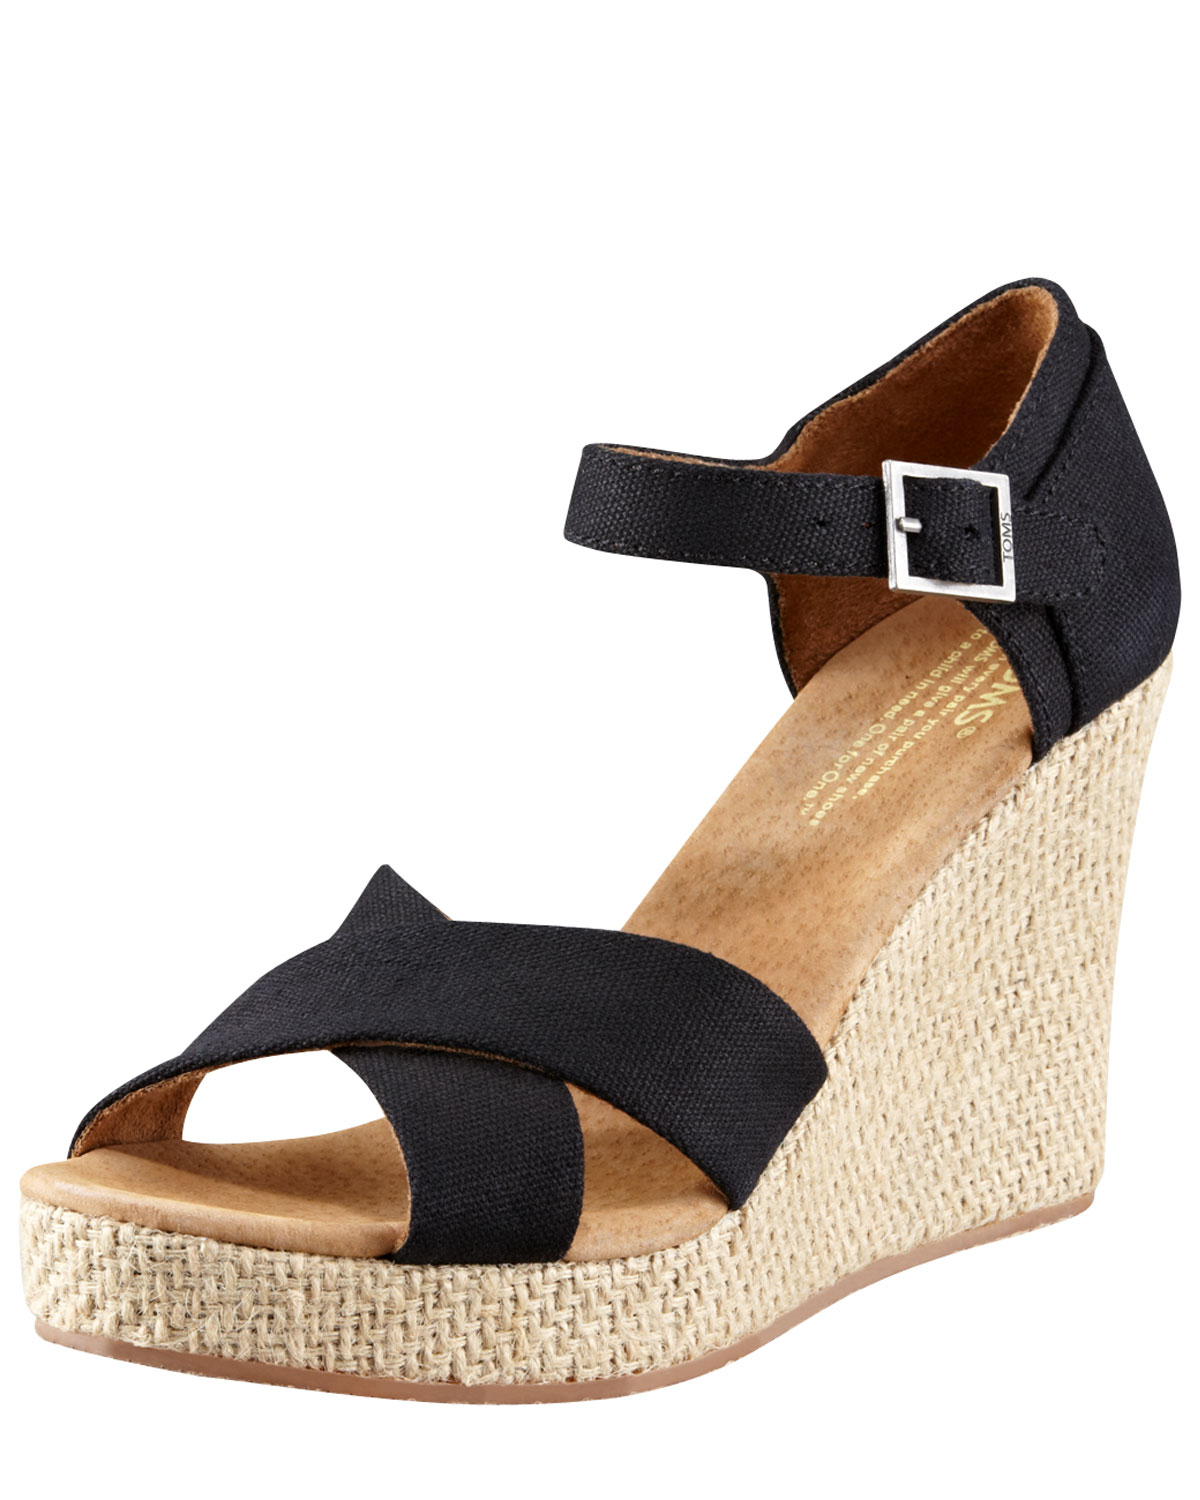 50c2d9ea291 TOMS Canvas Wedge Sandal in Black - Lyst